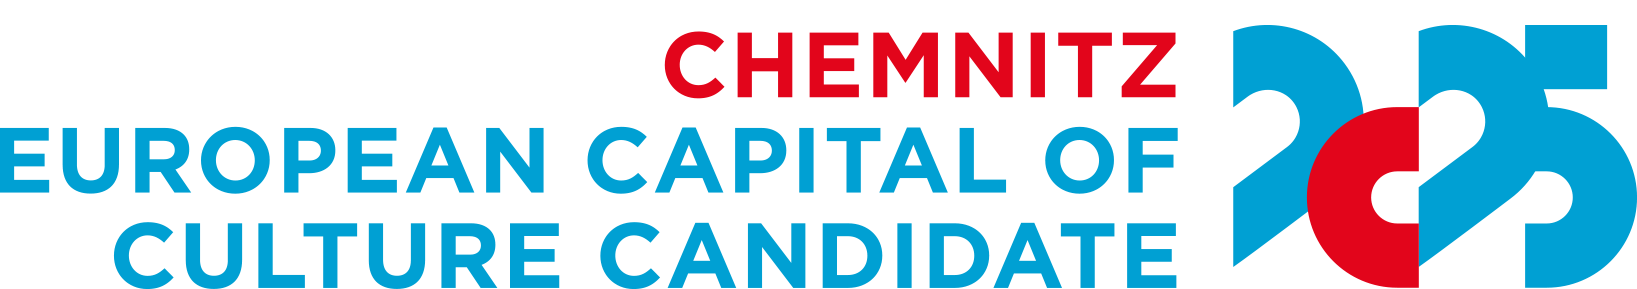 Chemnitz European Capital of Culture 2025 Logo